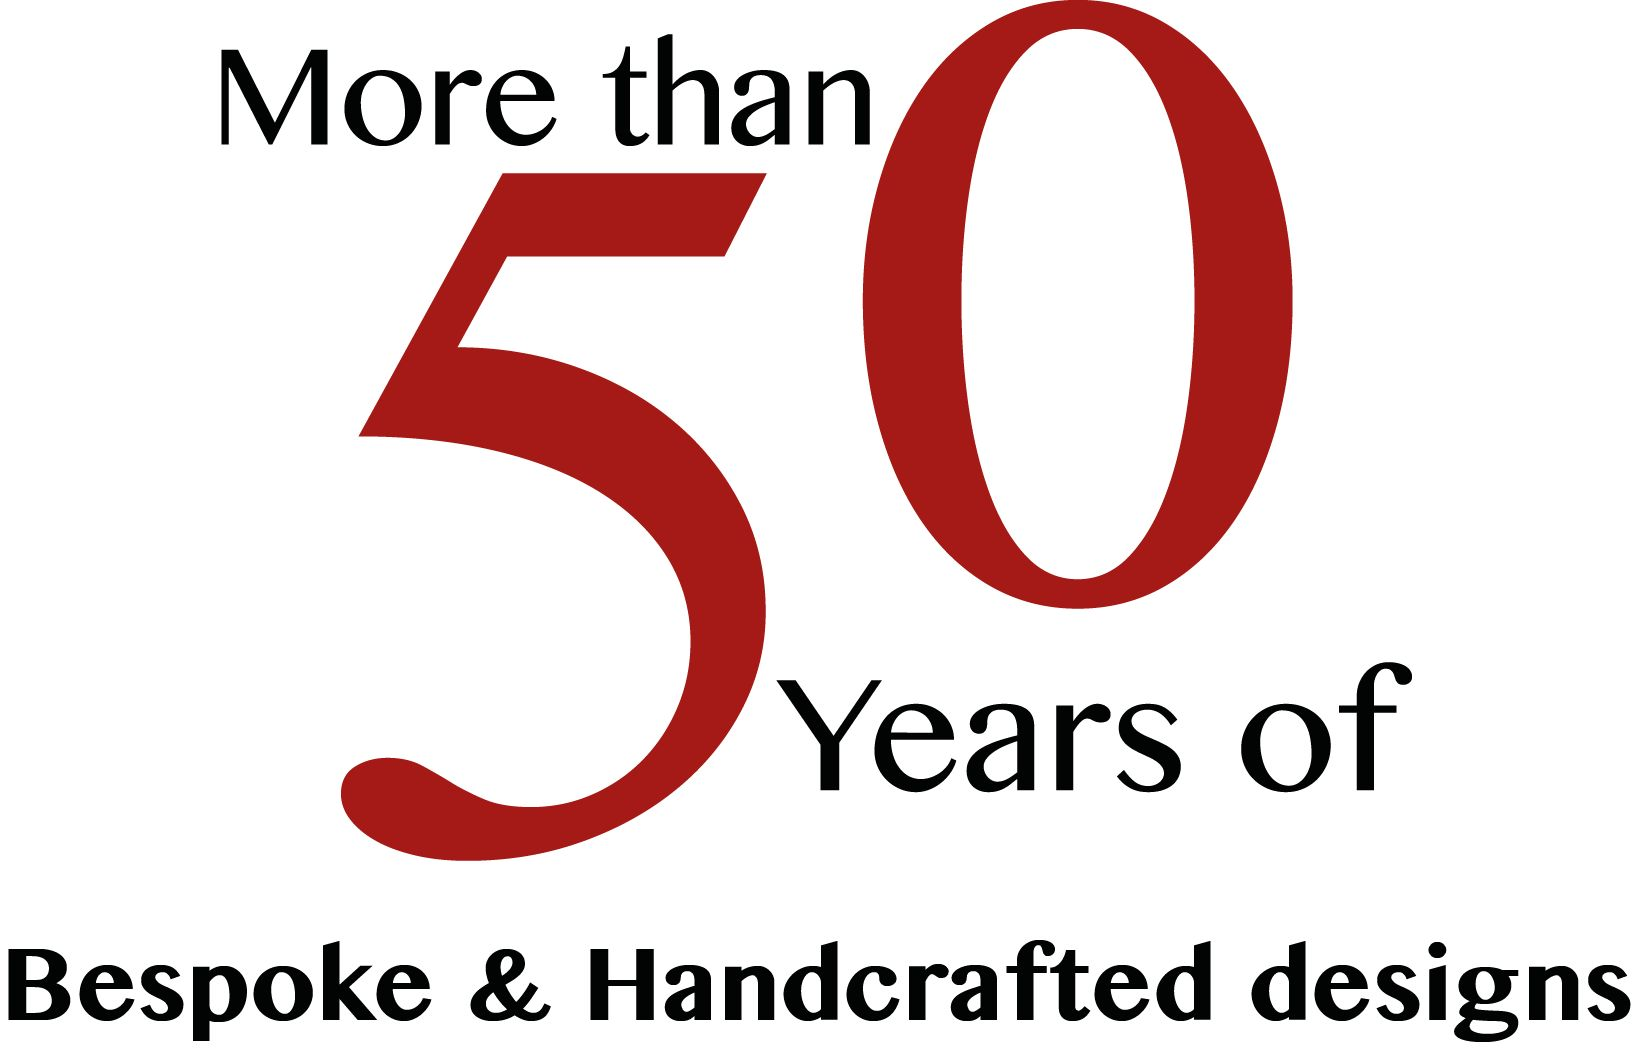 More than 50 years of bespoke & handcrafted kitchens & designs